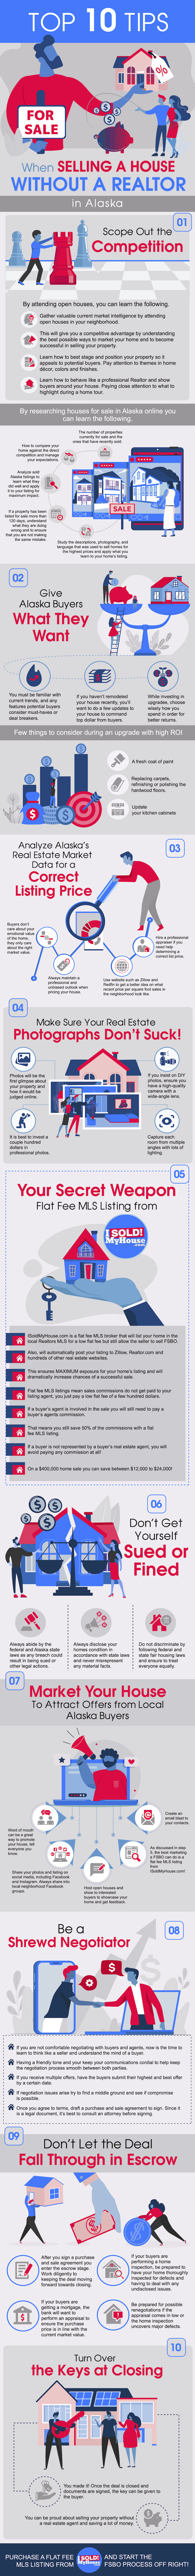 infographic of the 10 steps to sell a house in alaska without an agent